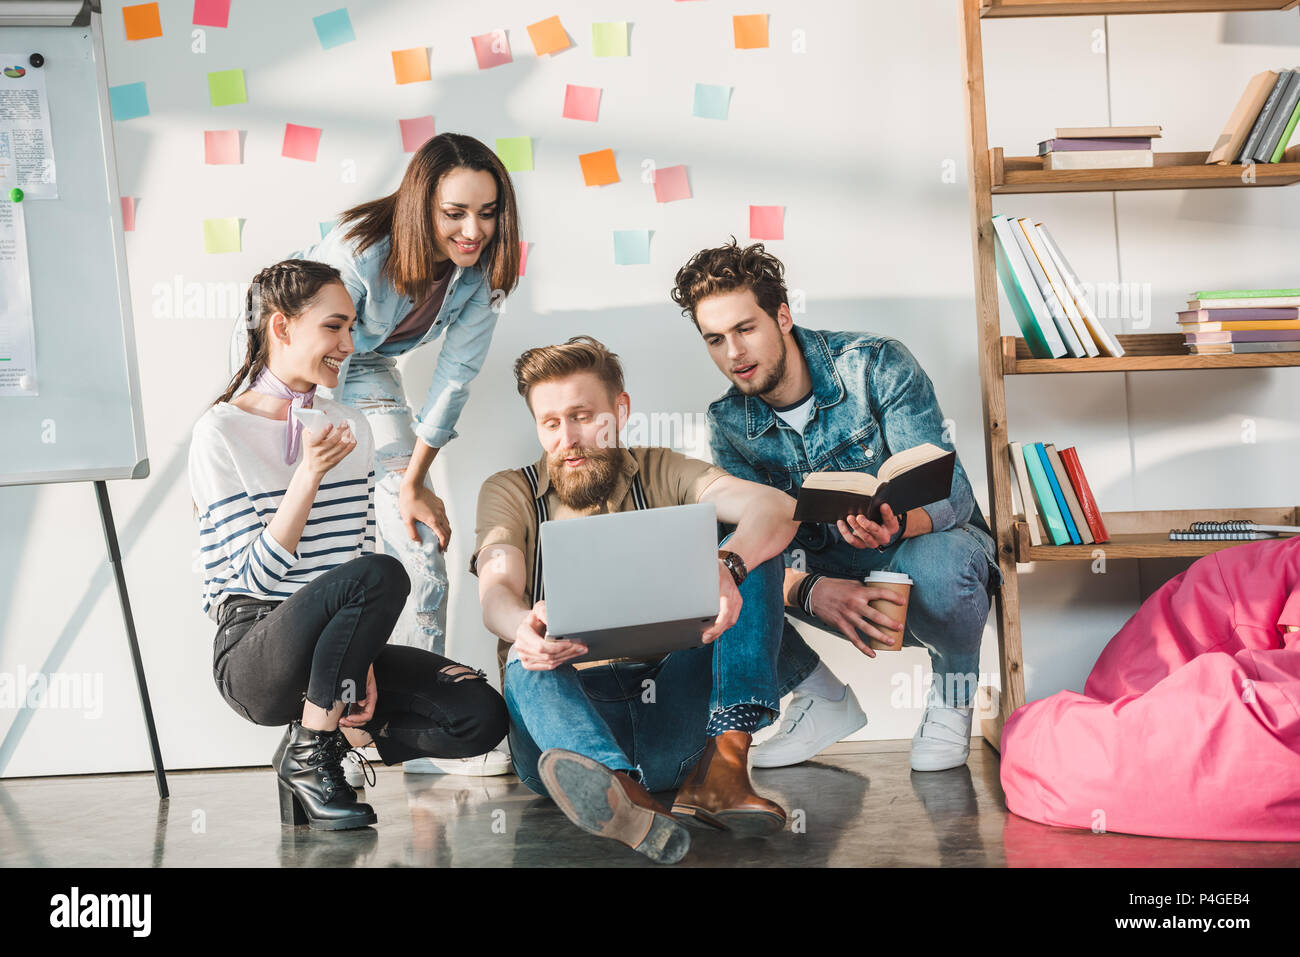 Diverse business team researching ideas in light workspace - Stock Image